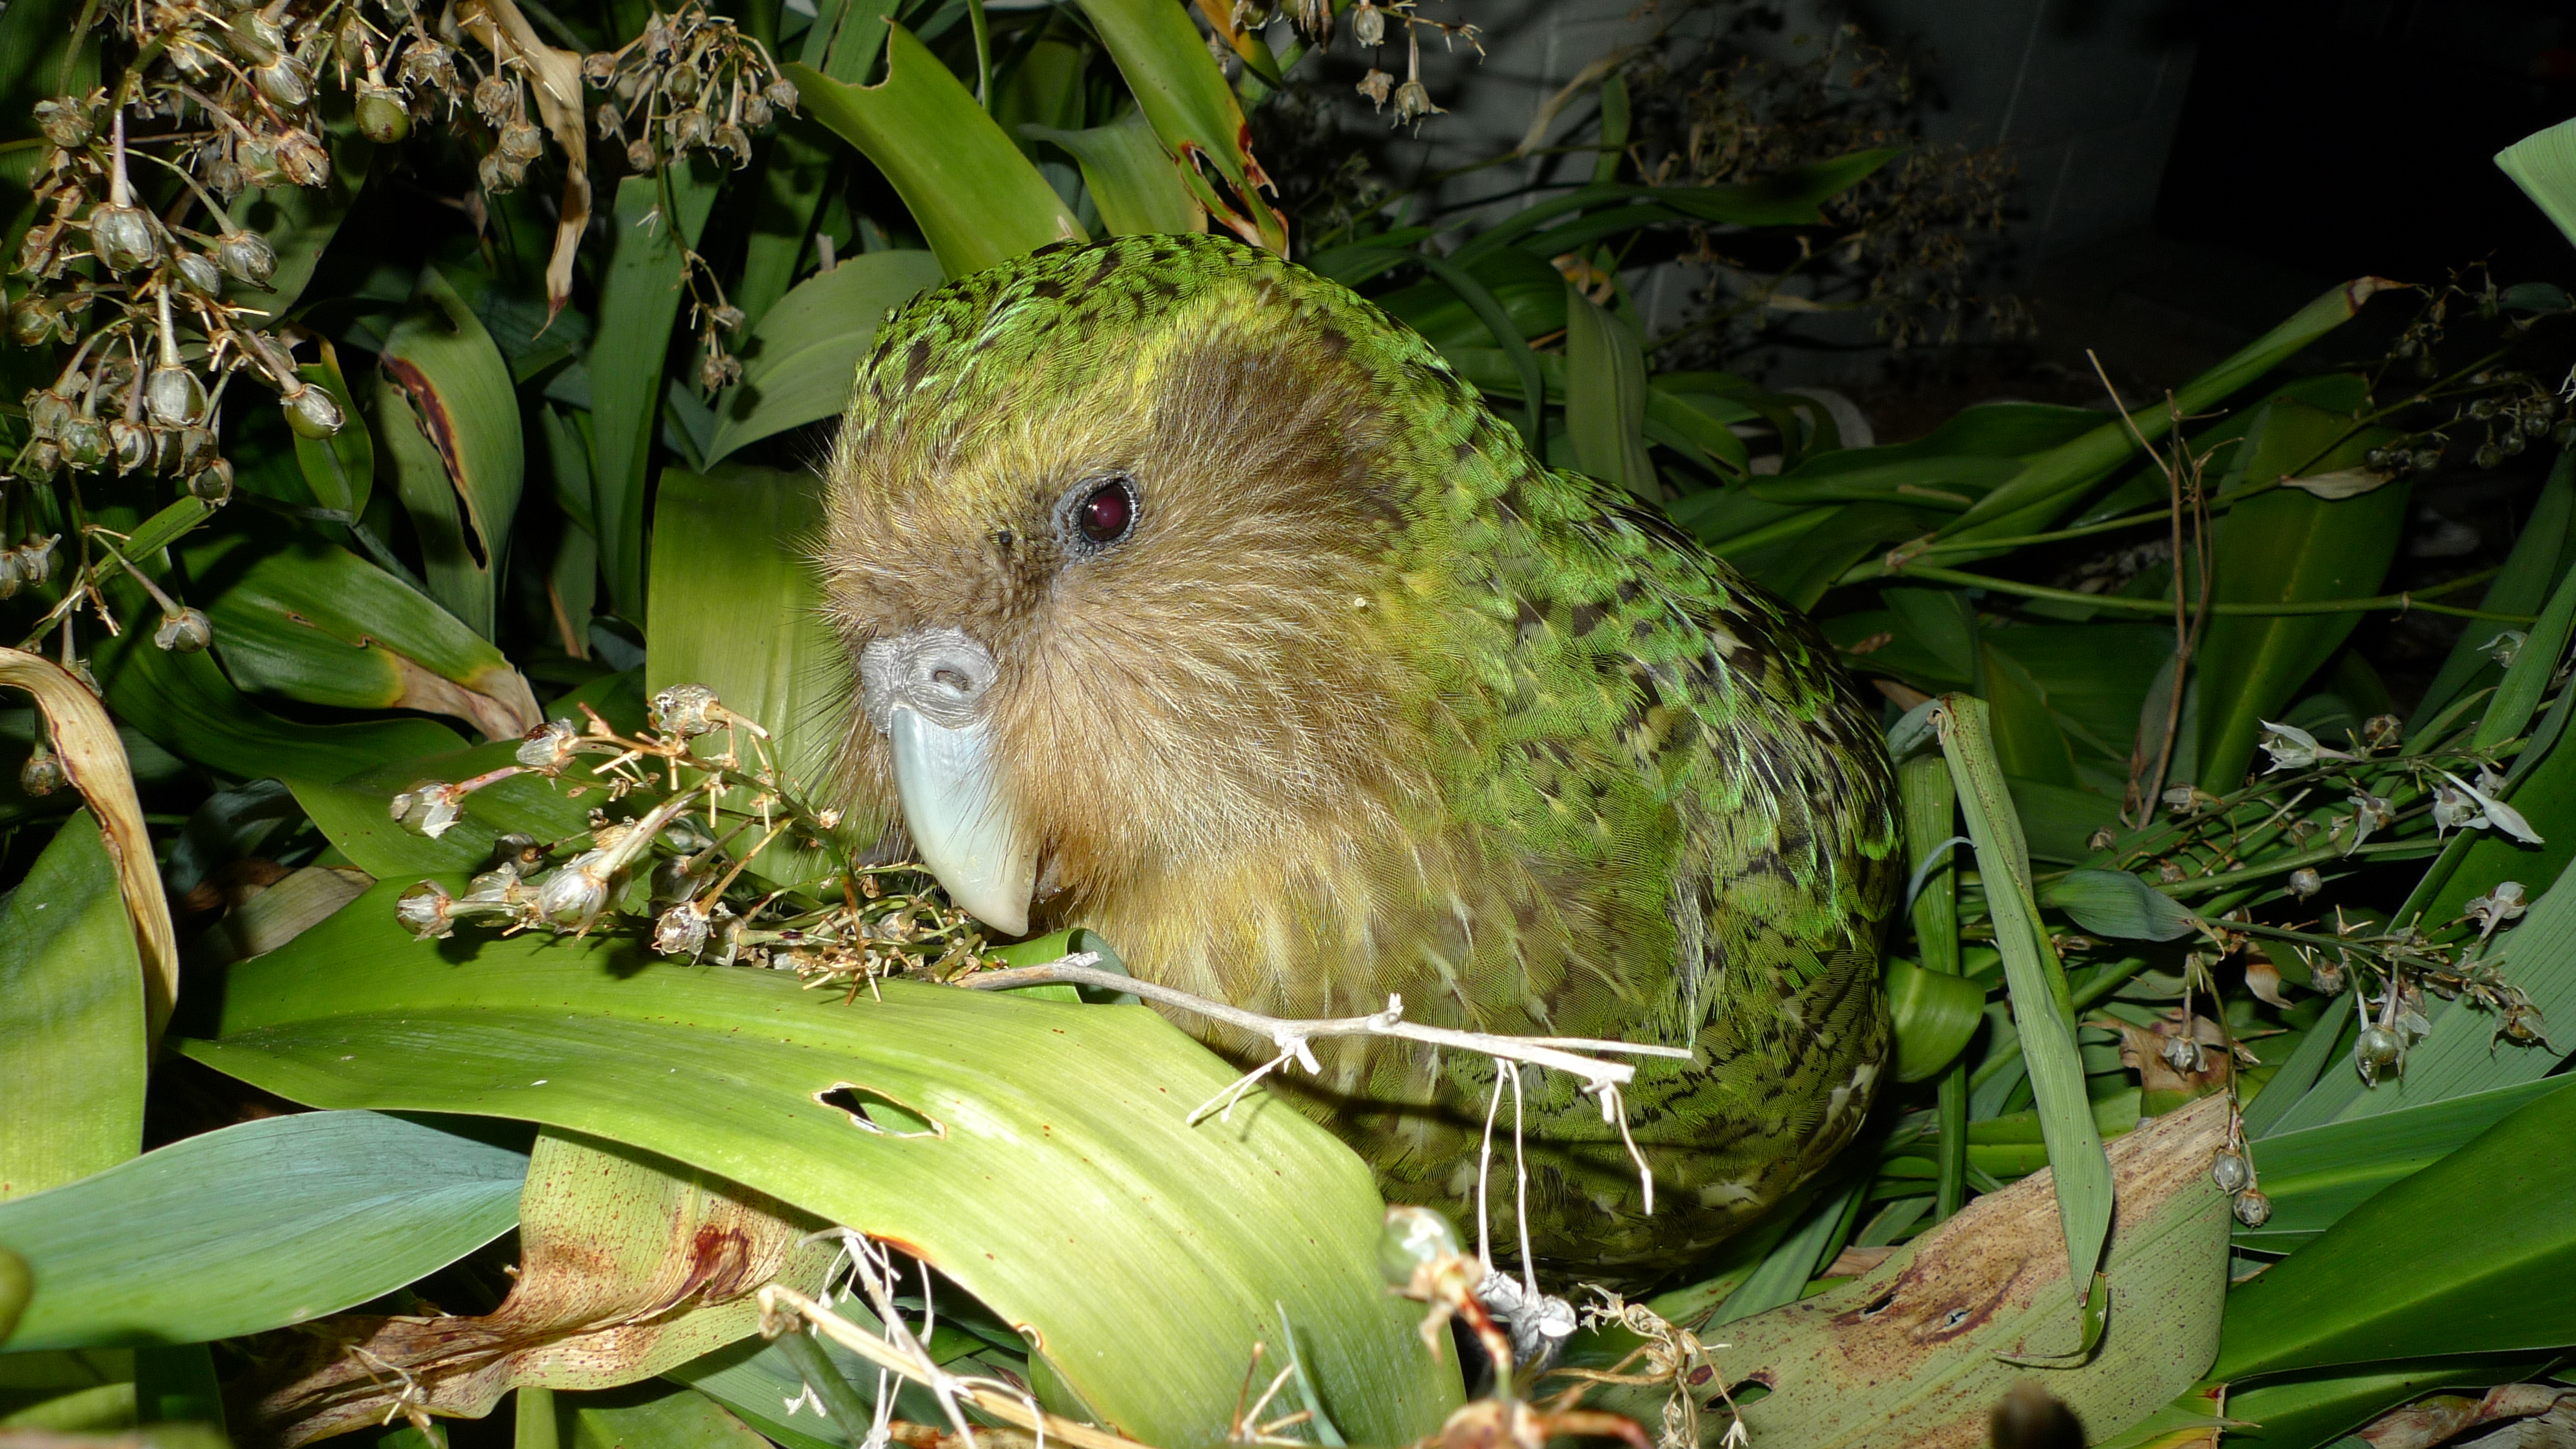 The Kakapo - The Department of Conservation